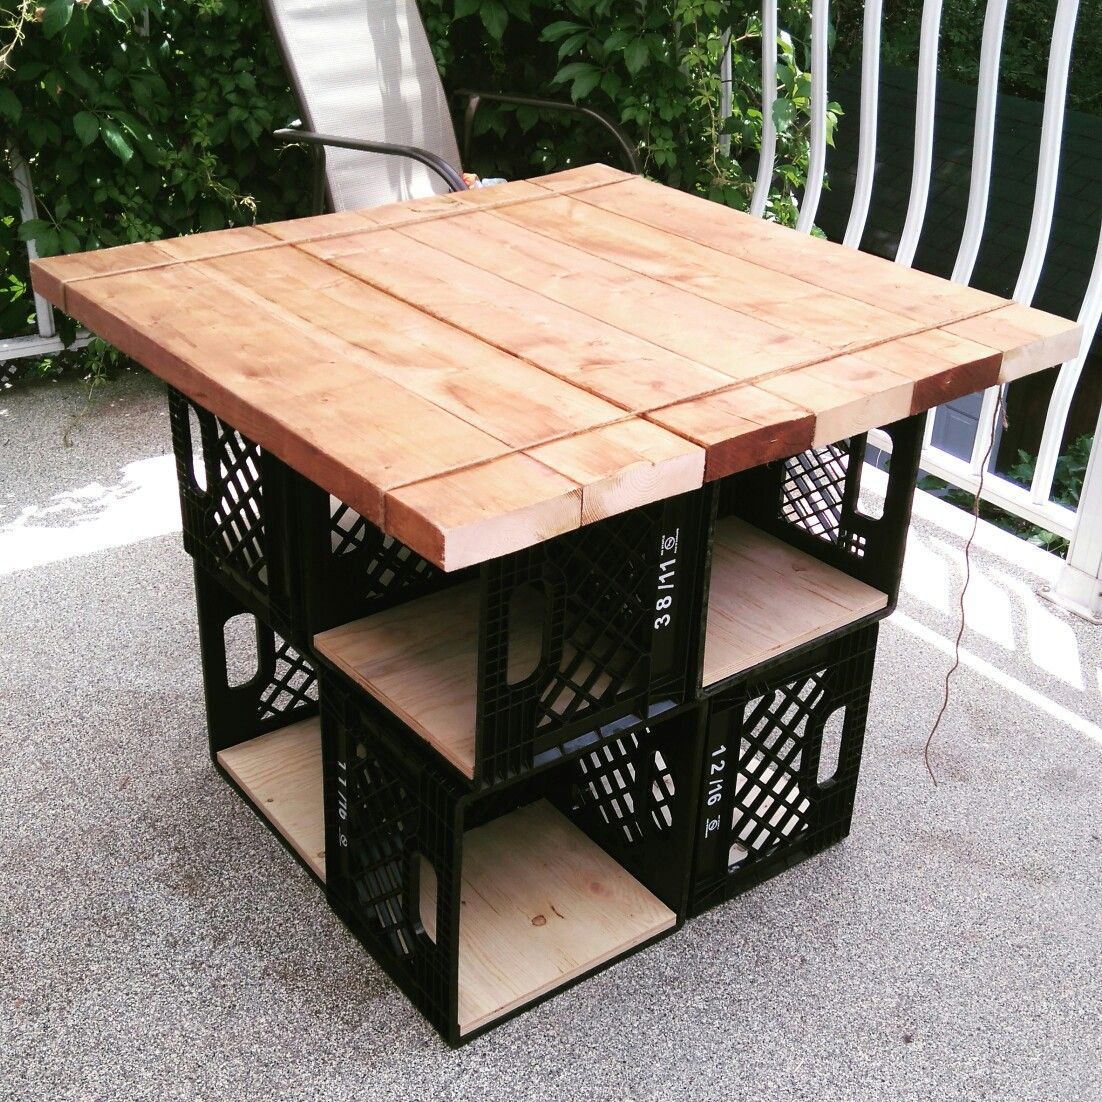 Marvelous Milk Crates Patio Table With Storage